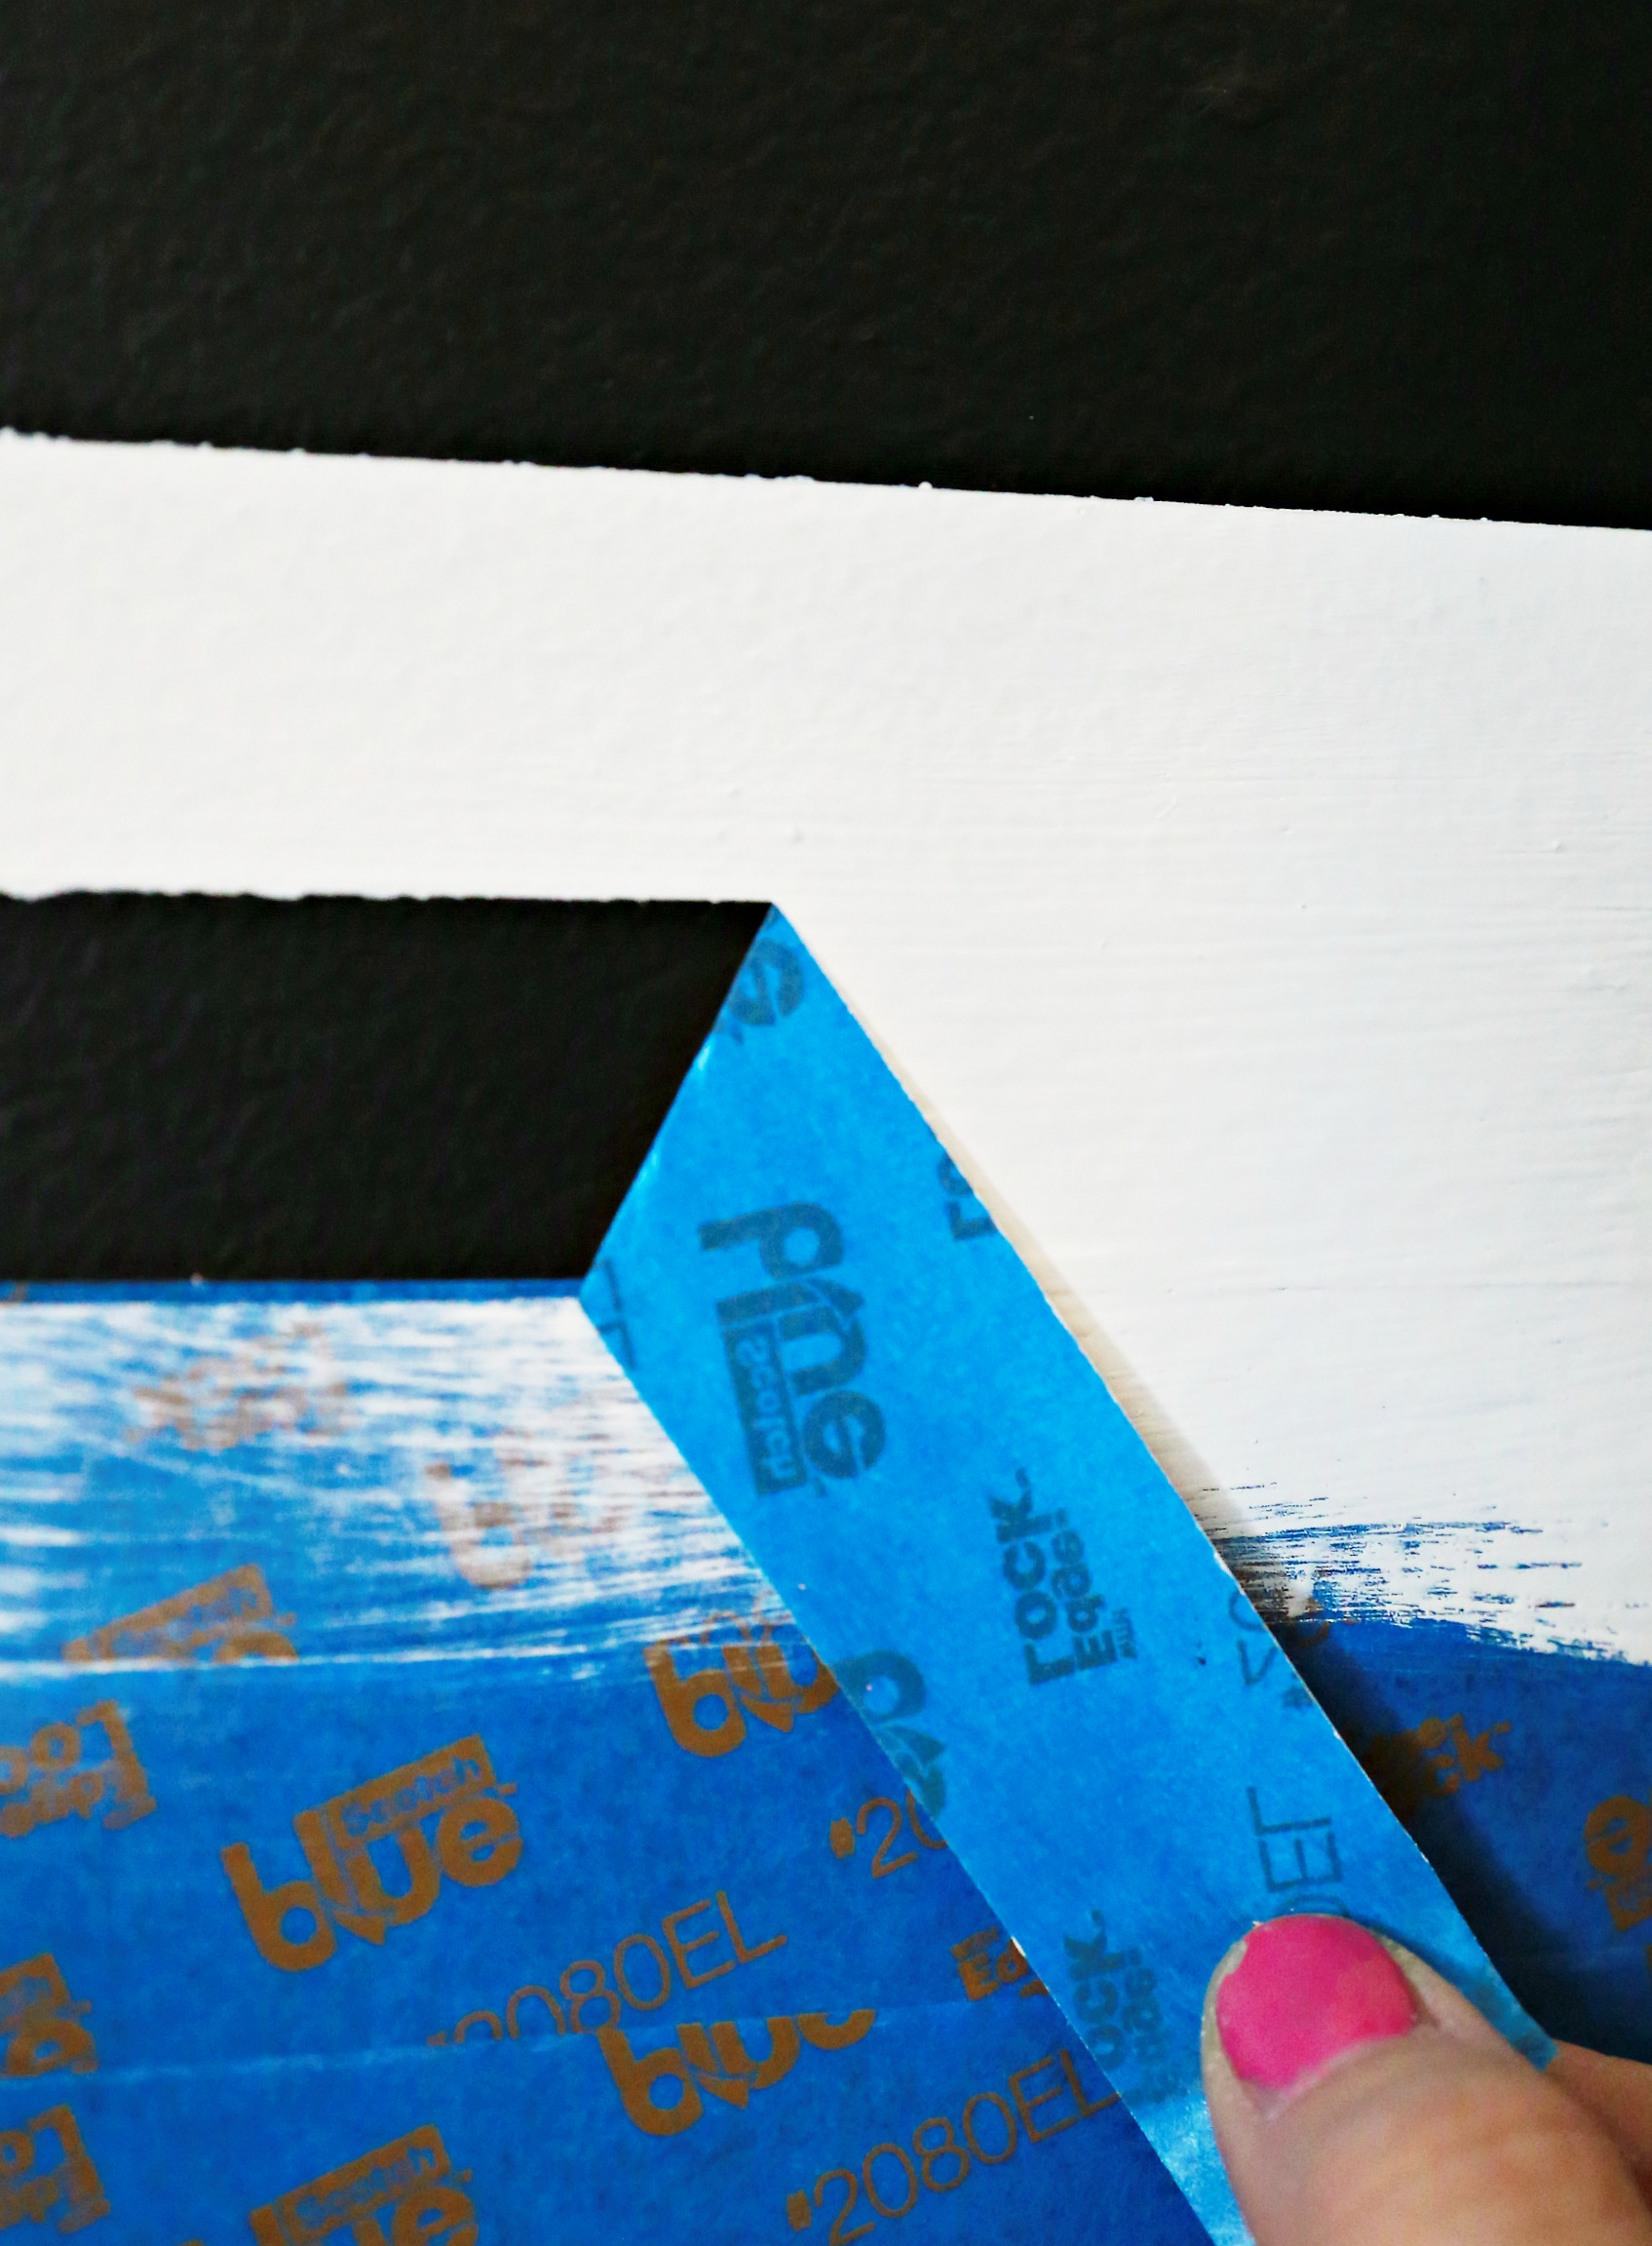 10 - After paint, remove tape